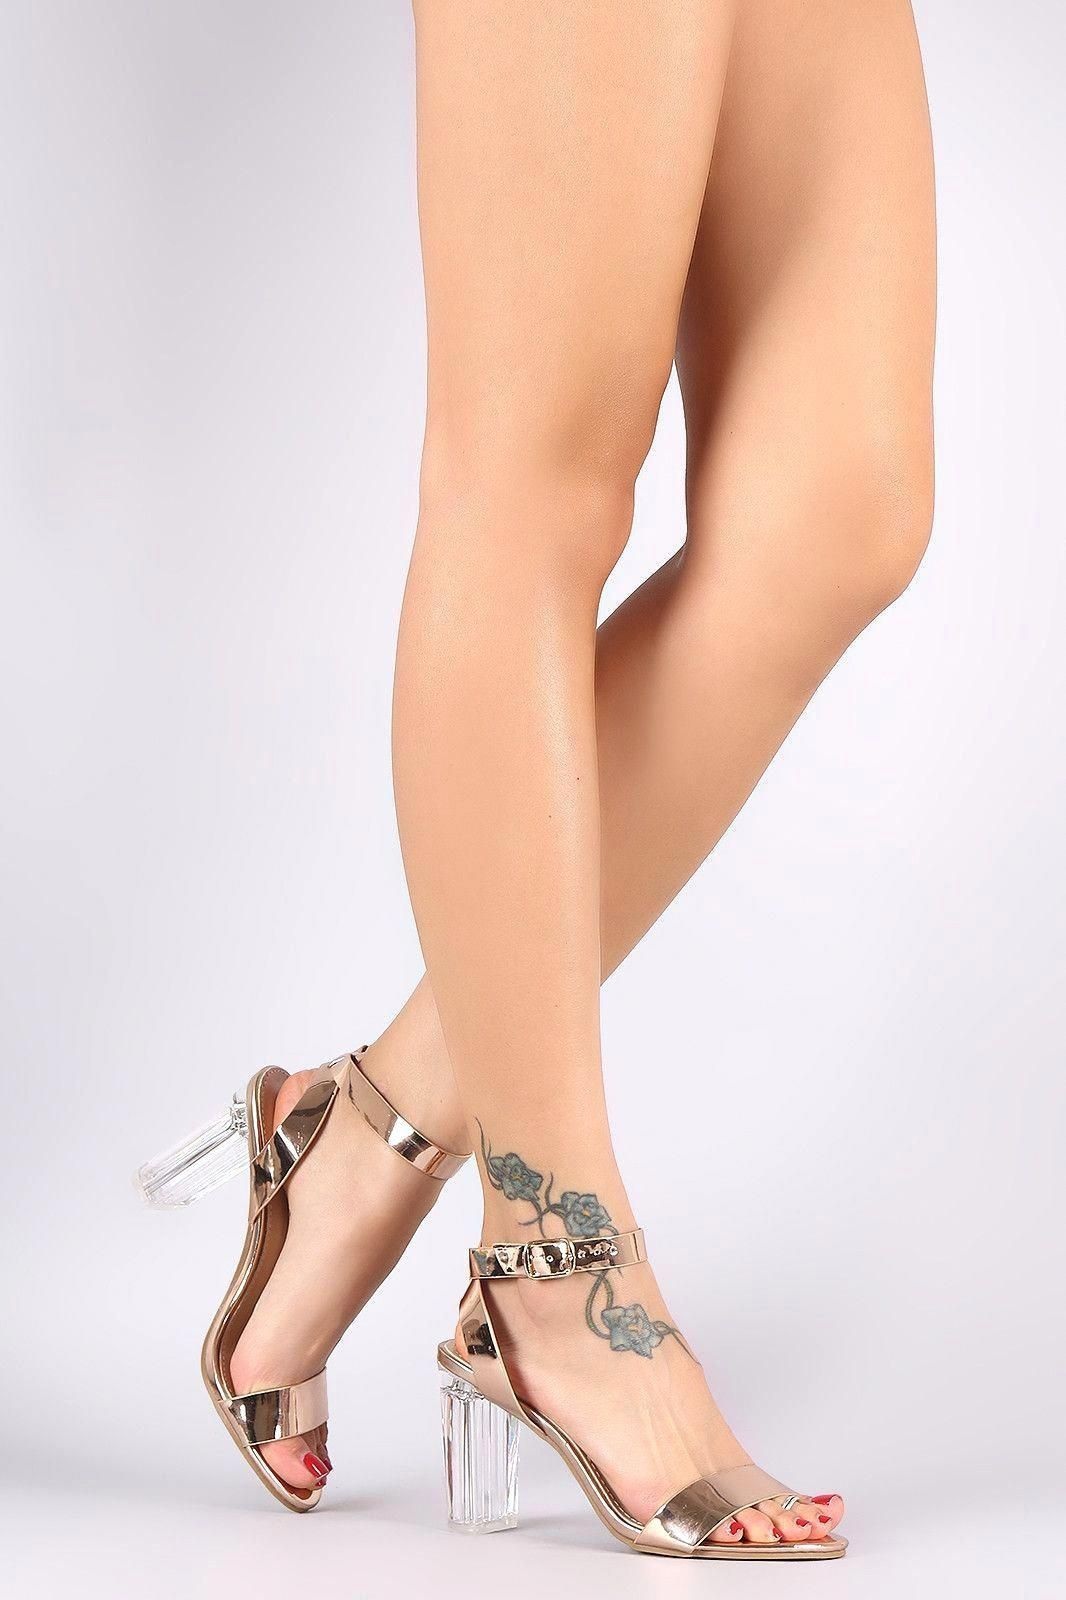 Details about  /Womens High Stiletto Heel Shoes Cut Out Slingbacks Buckle Strap Platform Stylish